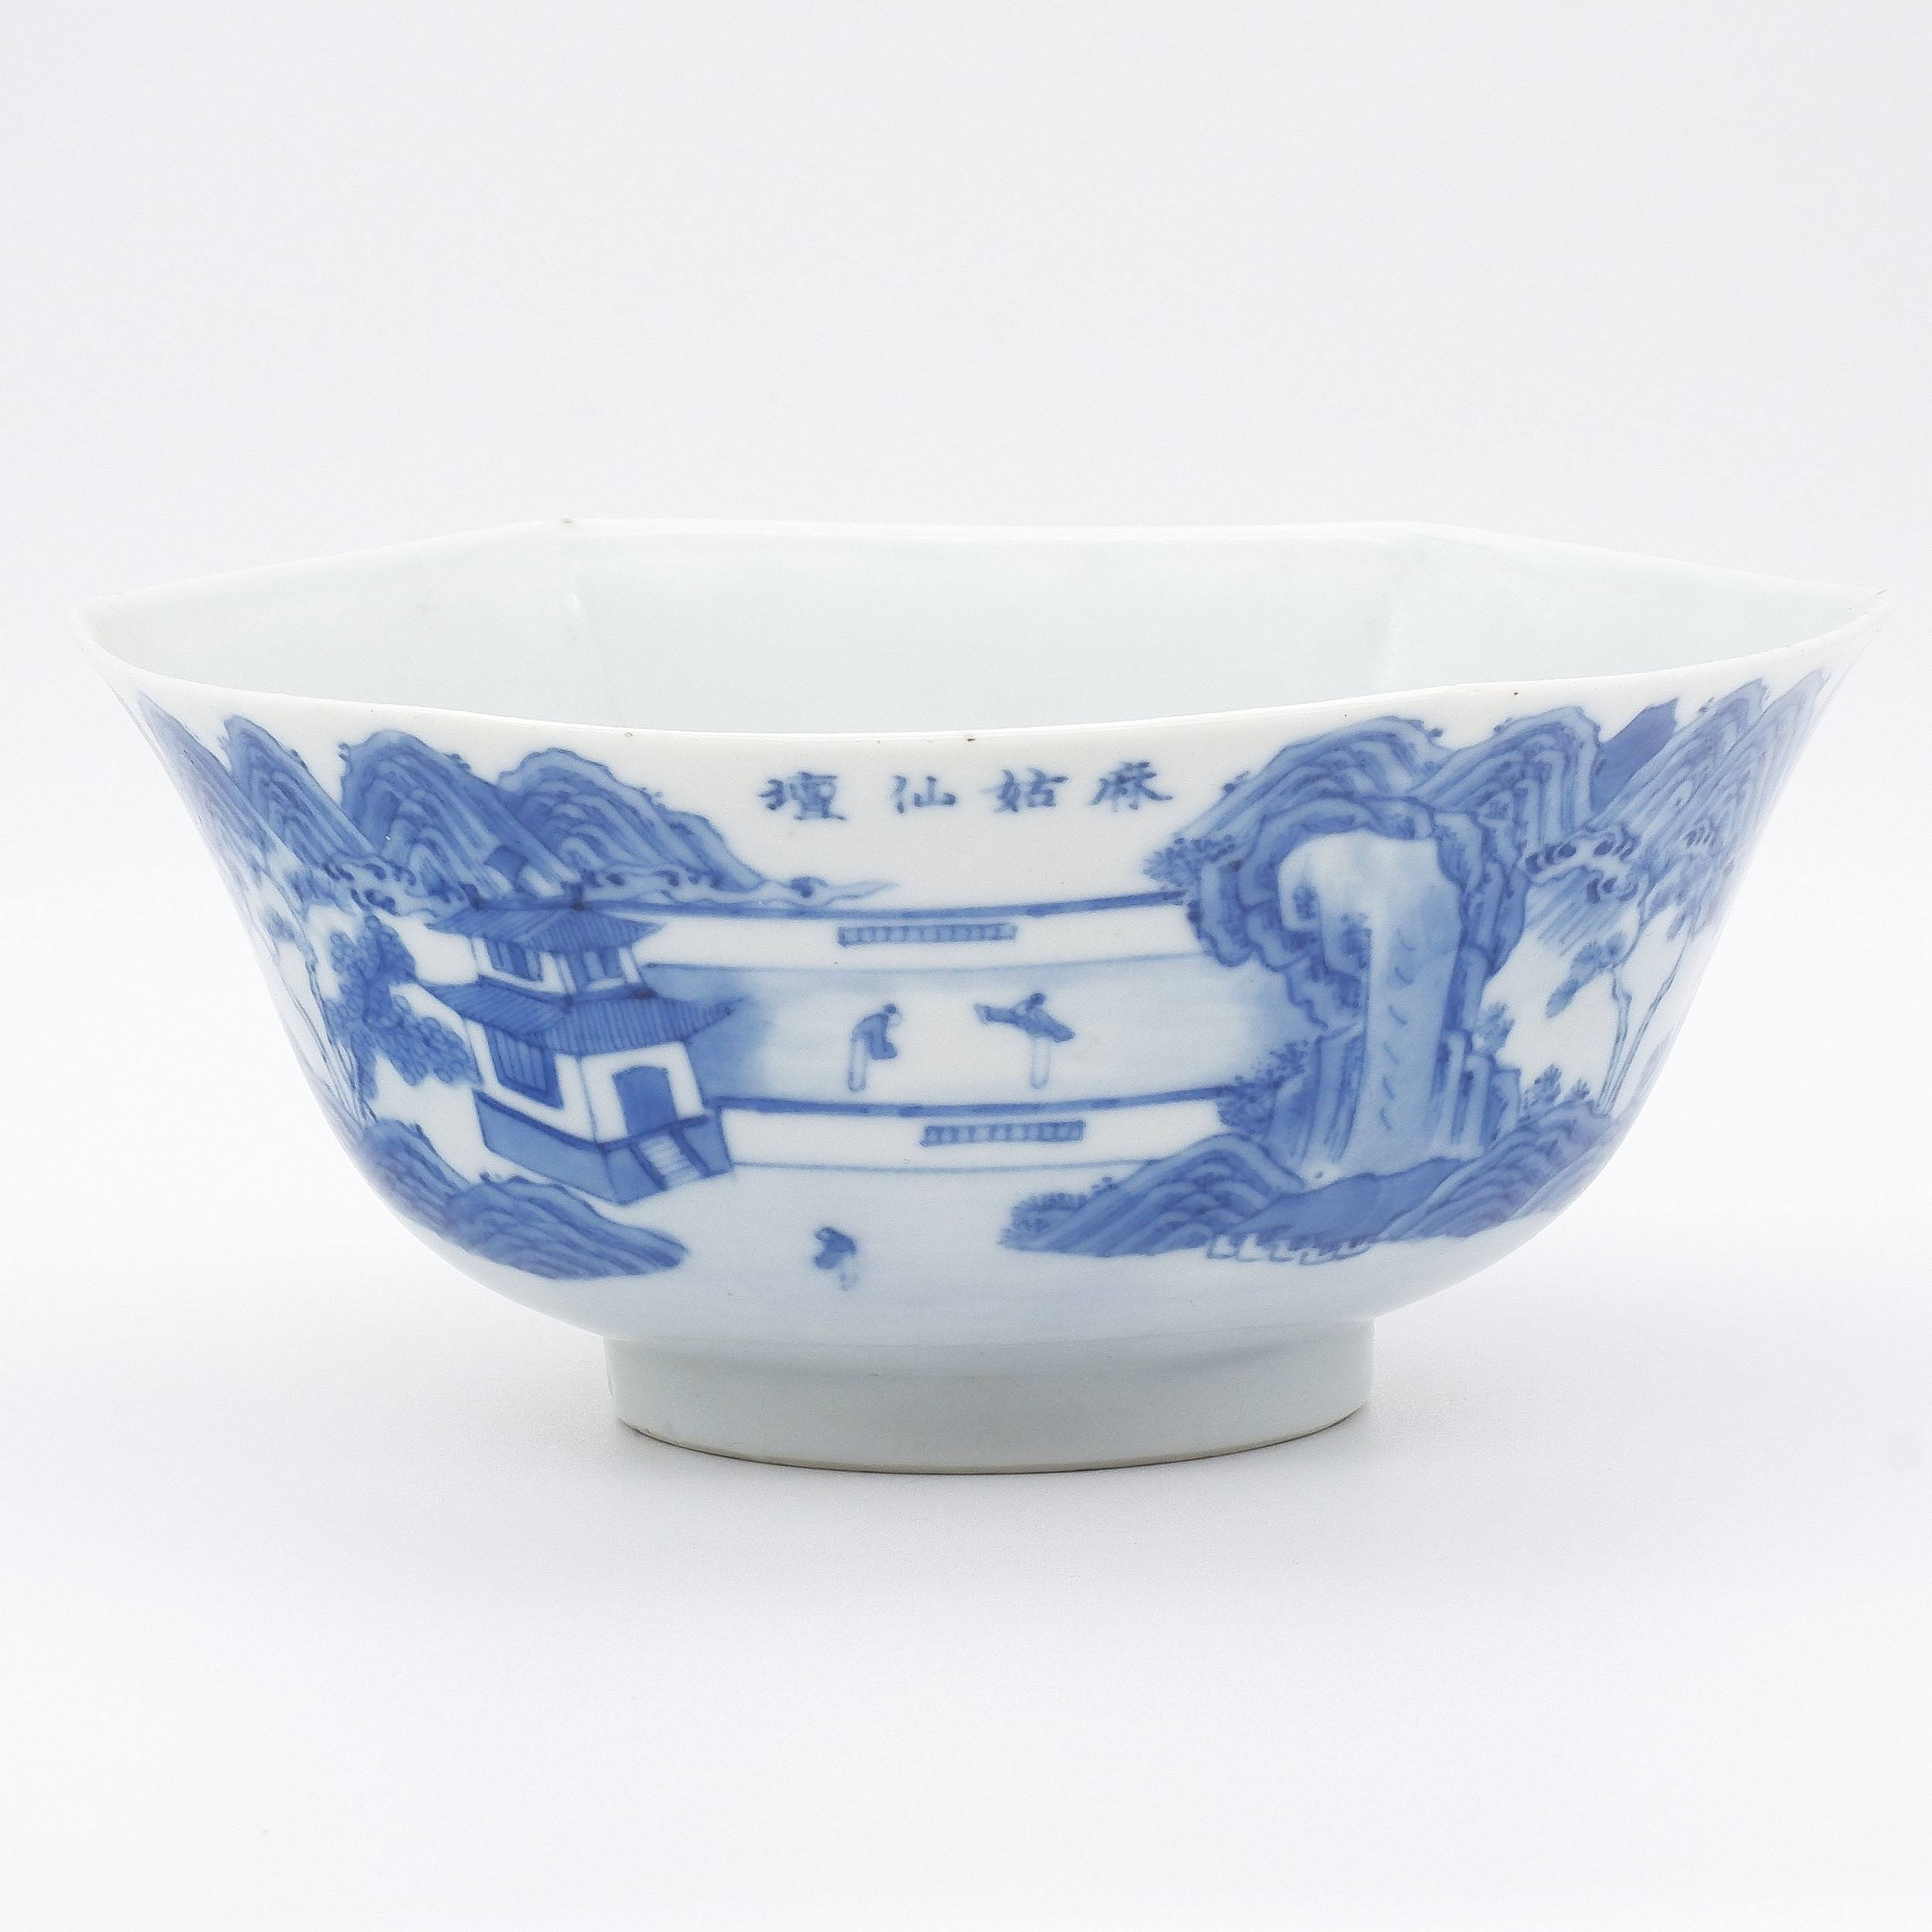 'Inscribed Chinese Blue and White Bowl with Mountain Palace Scene, Daoguang Mark, Qing Dynasty'